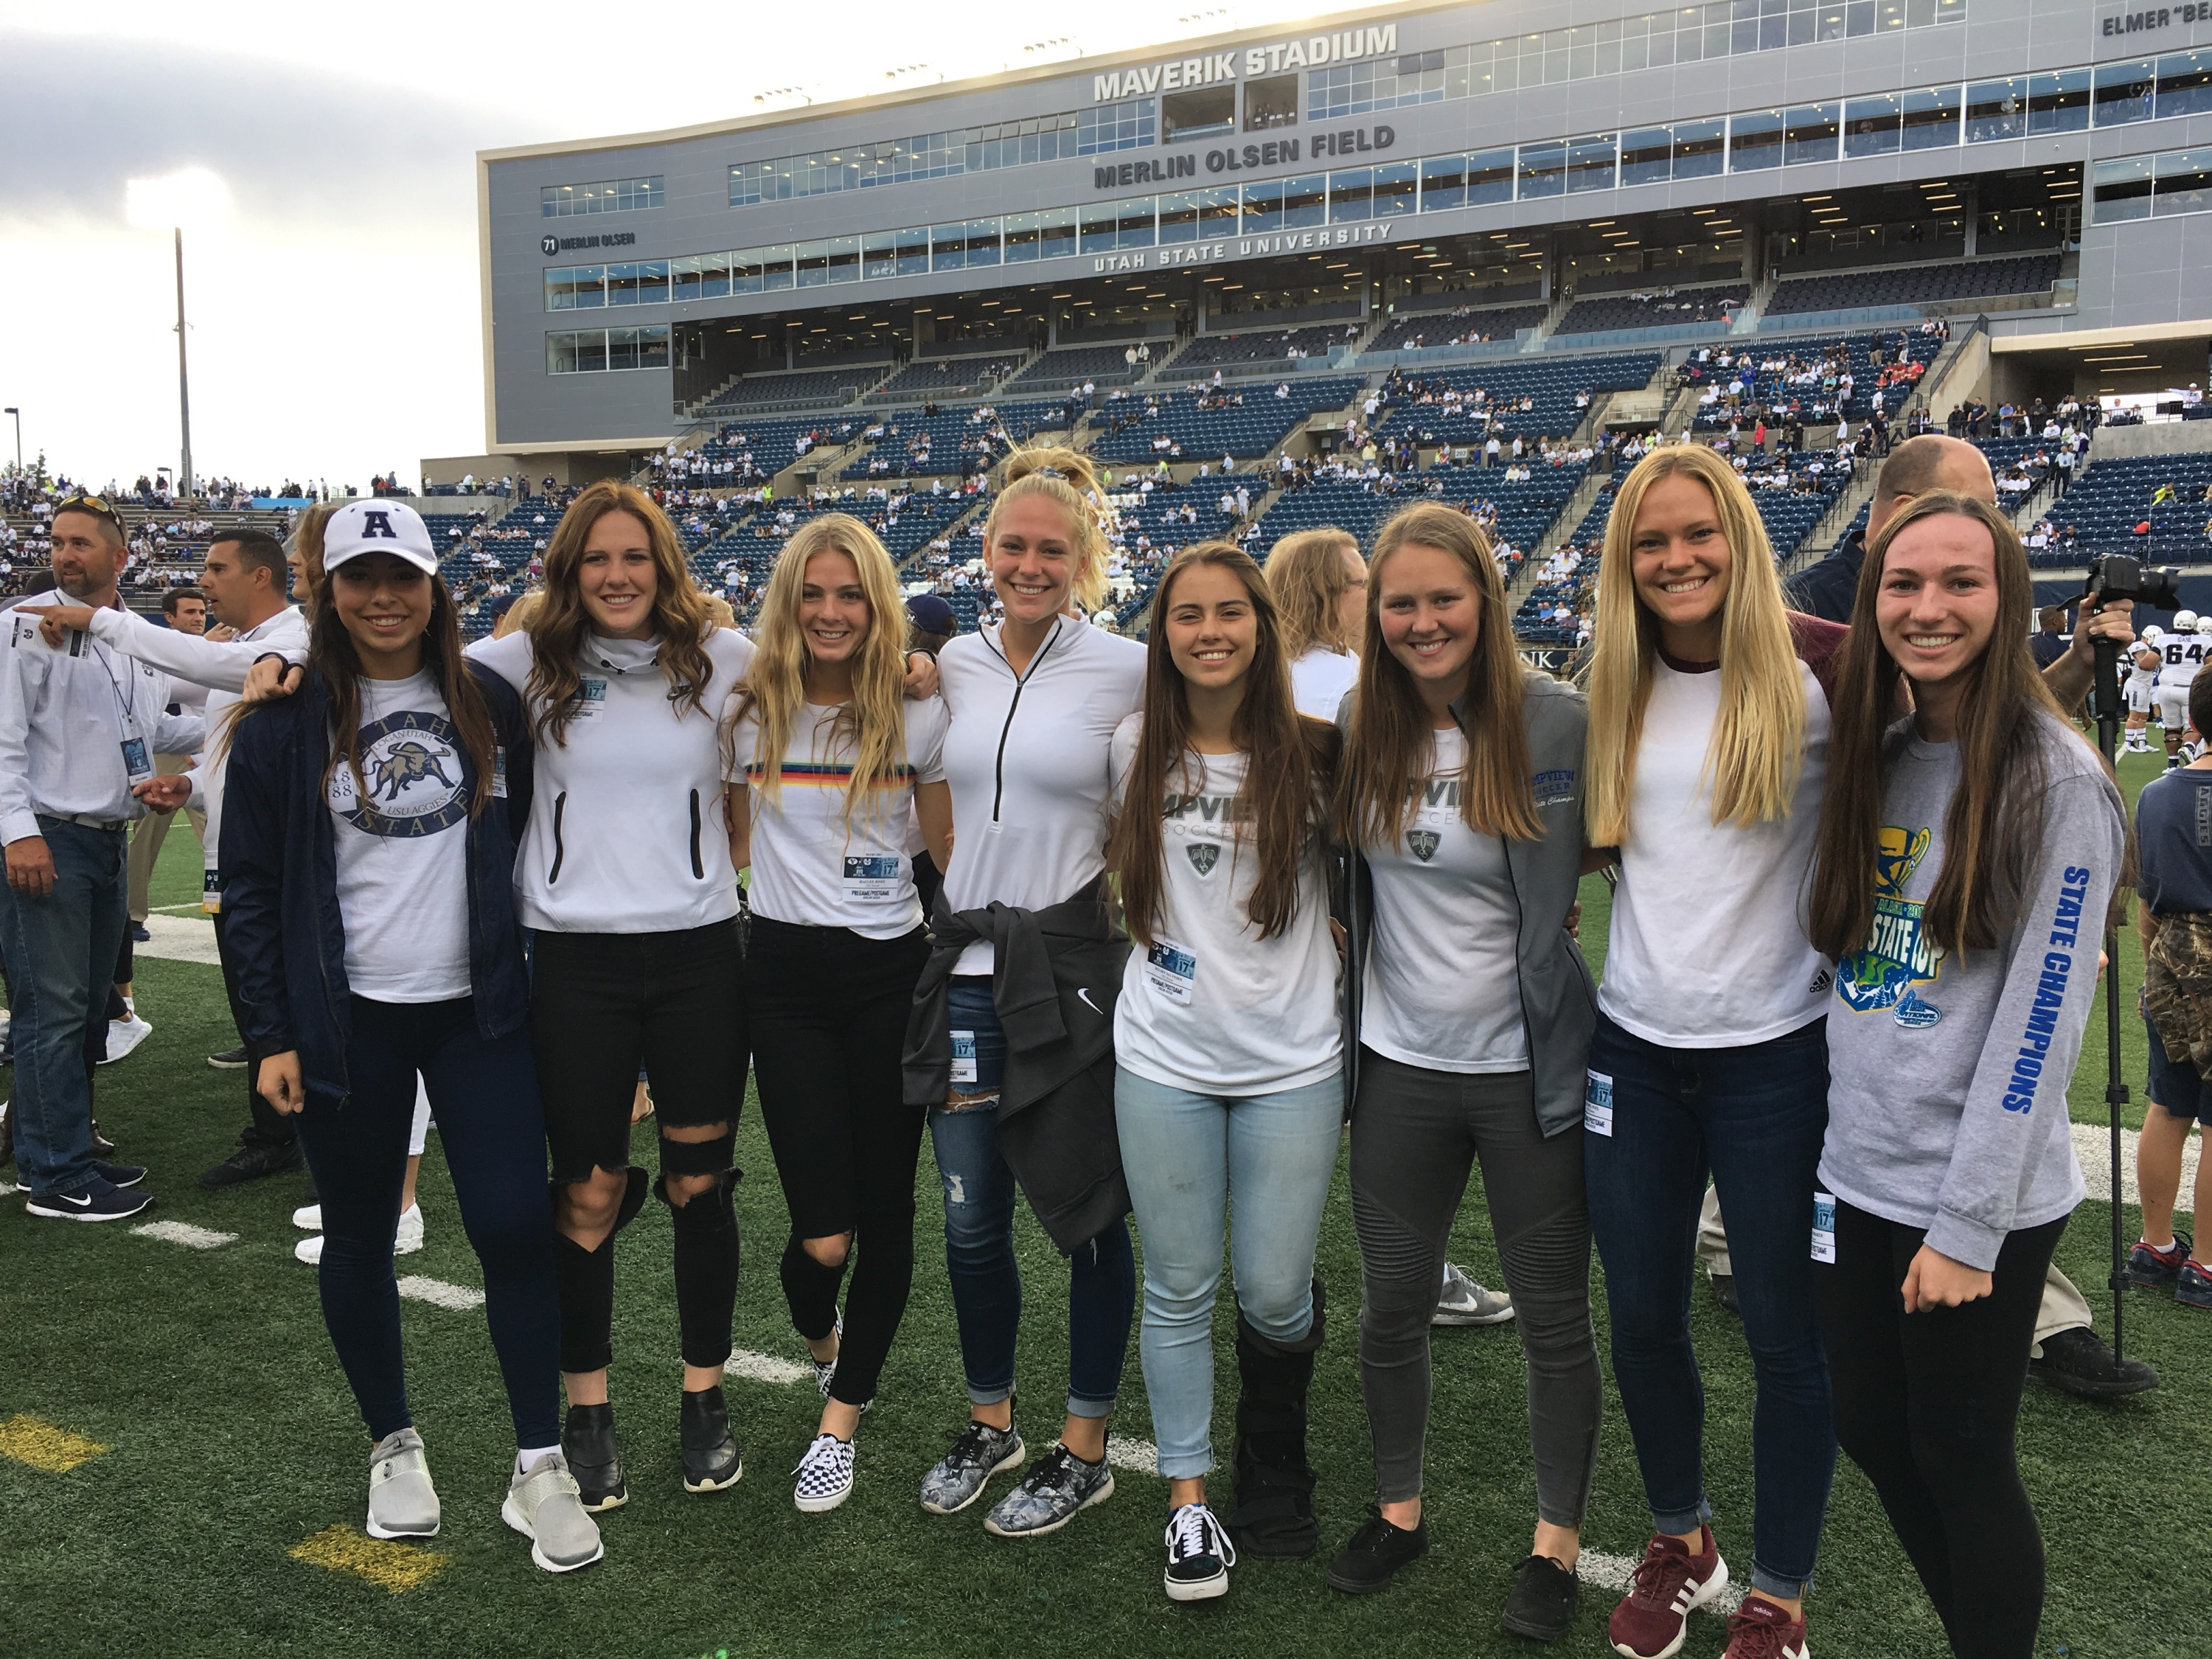 Utah State soccer has signed eight players for the upcoming 2018 season, as announced by head coach Heather Cairns, Thursday.